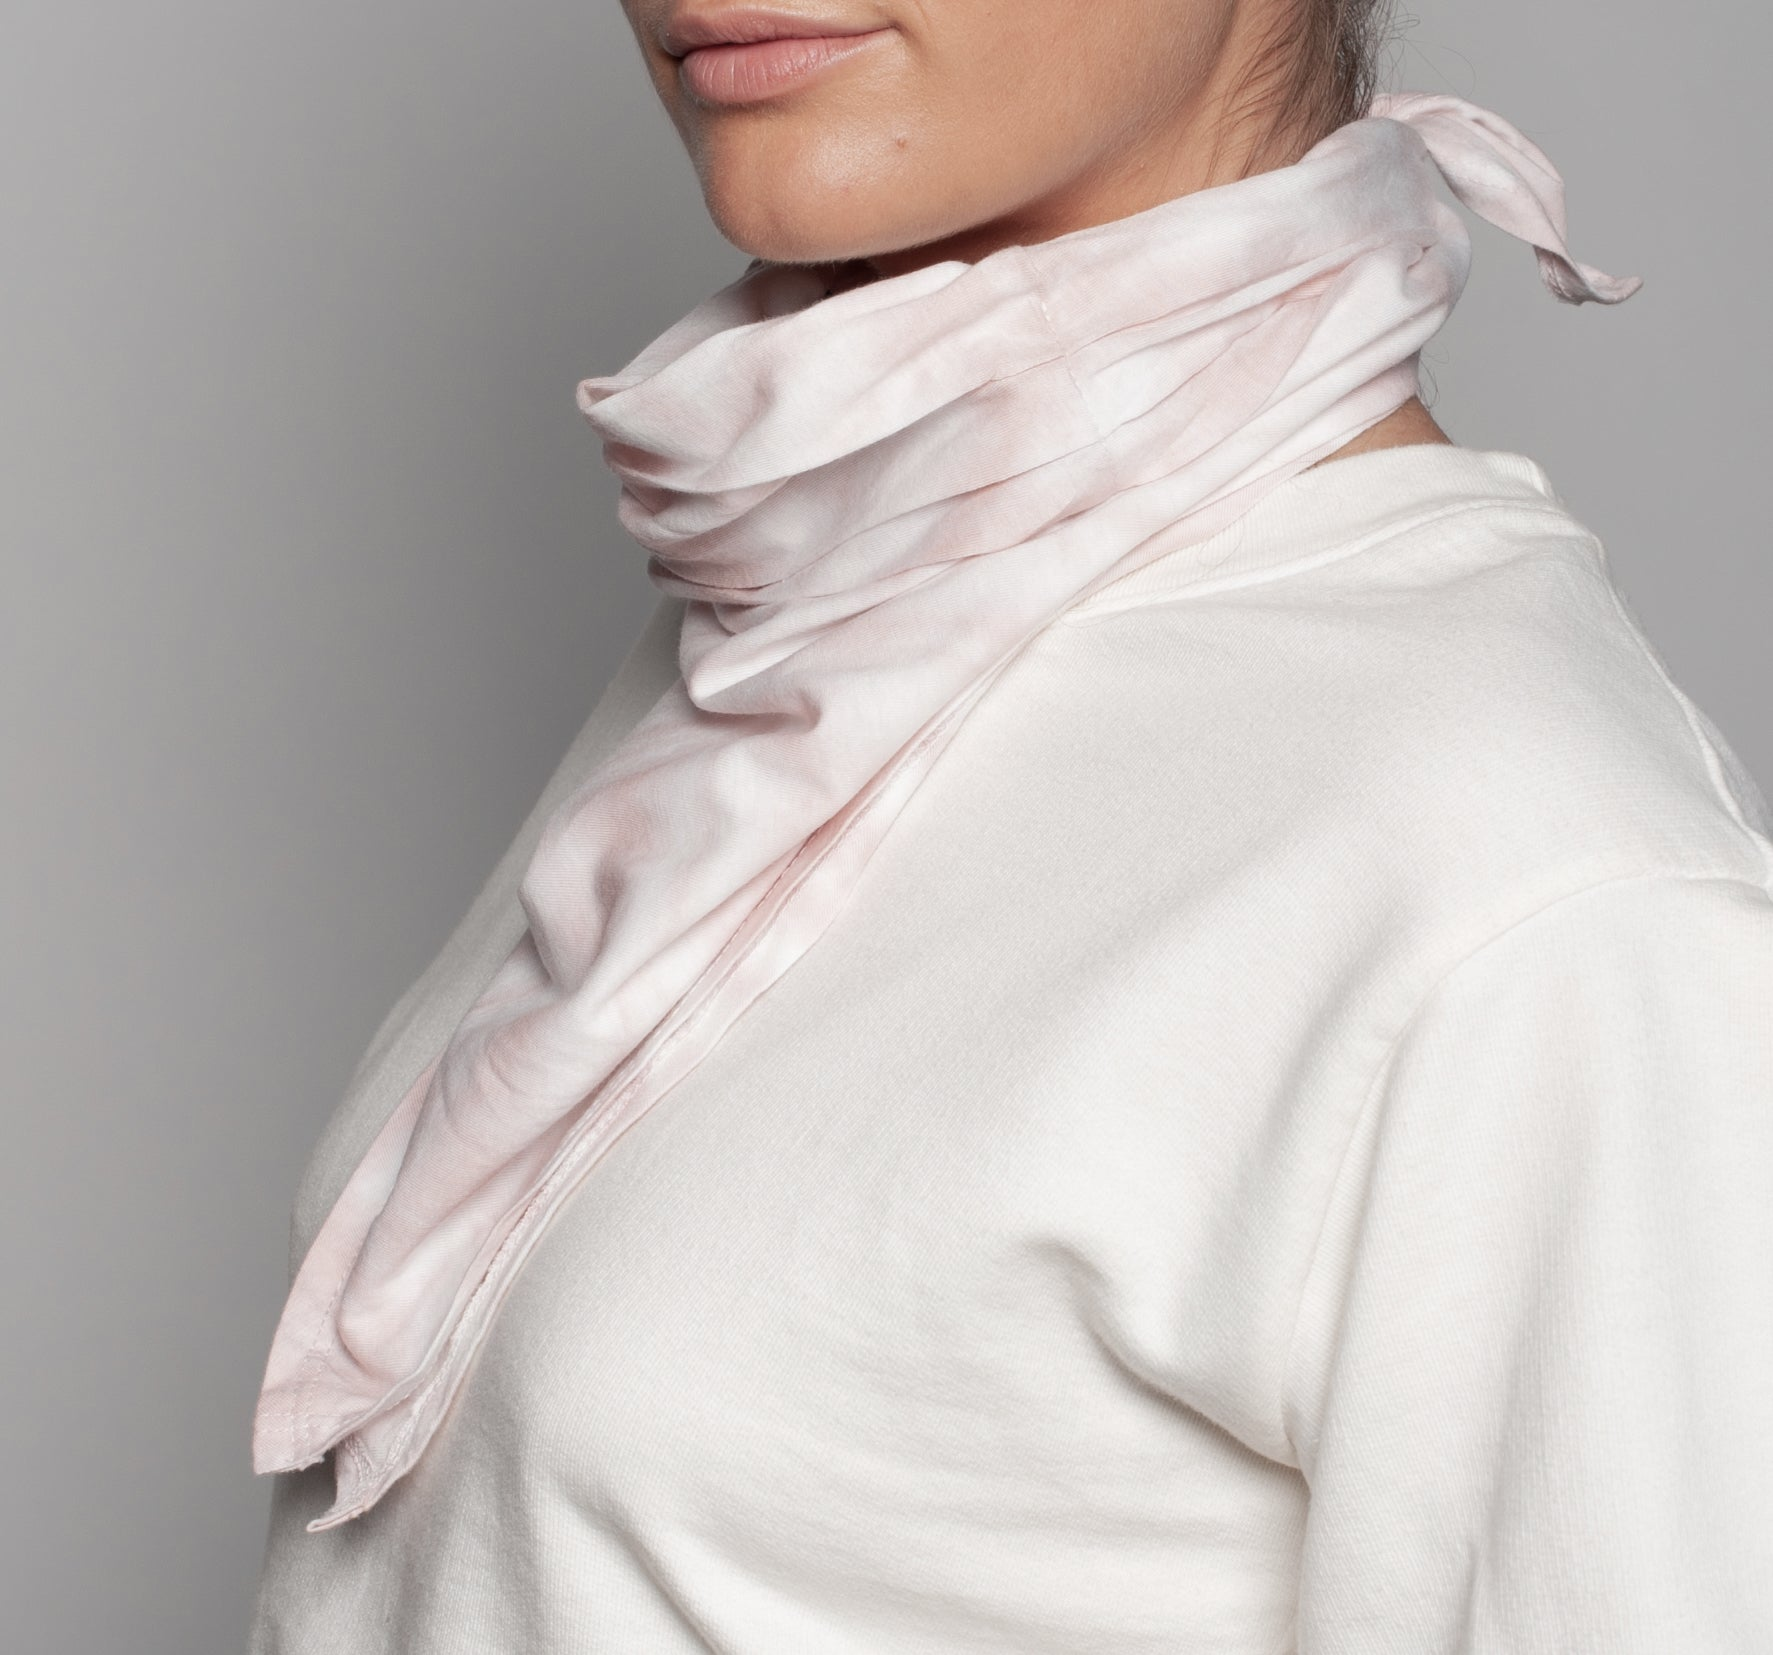 Marble Blush Neck Scarf Dual Purpose Face Covering